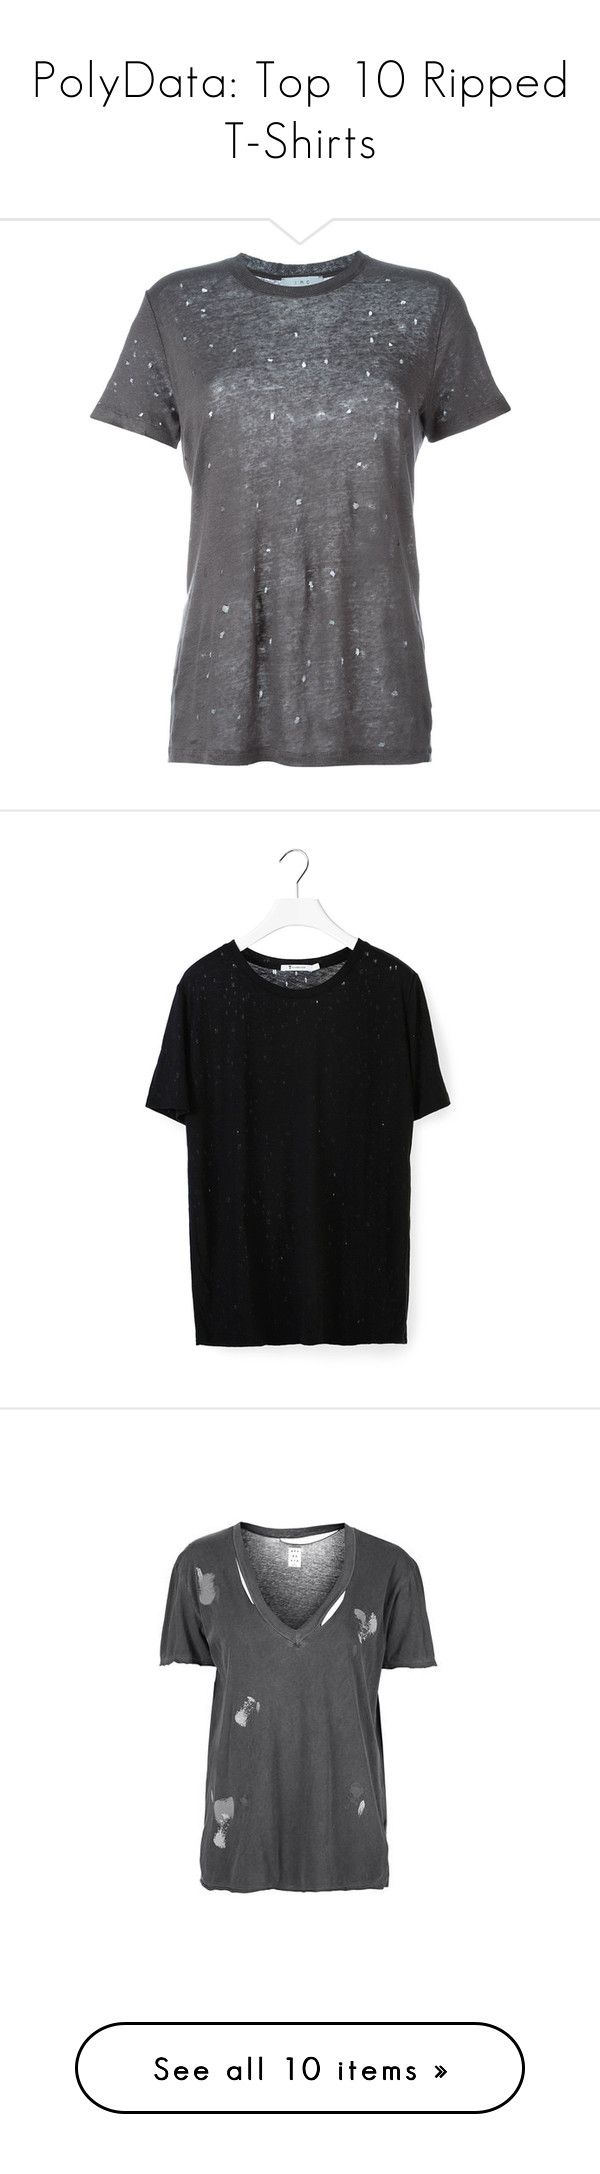 """""""PolyData: Top 10 Ripped T-Shirts"""" by polyvore ❤ liked on Polyvore featuring Rippedtshirt, polydata, tops, t-shirts, t shirt, tees, grey, linen tee, ripped tee and ripped tops"""